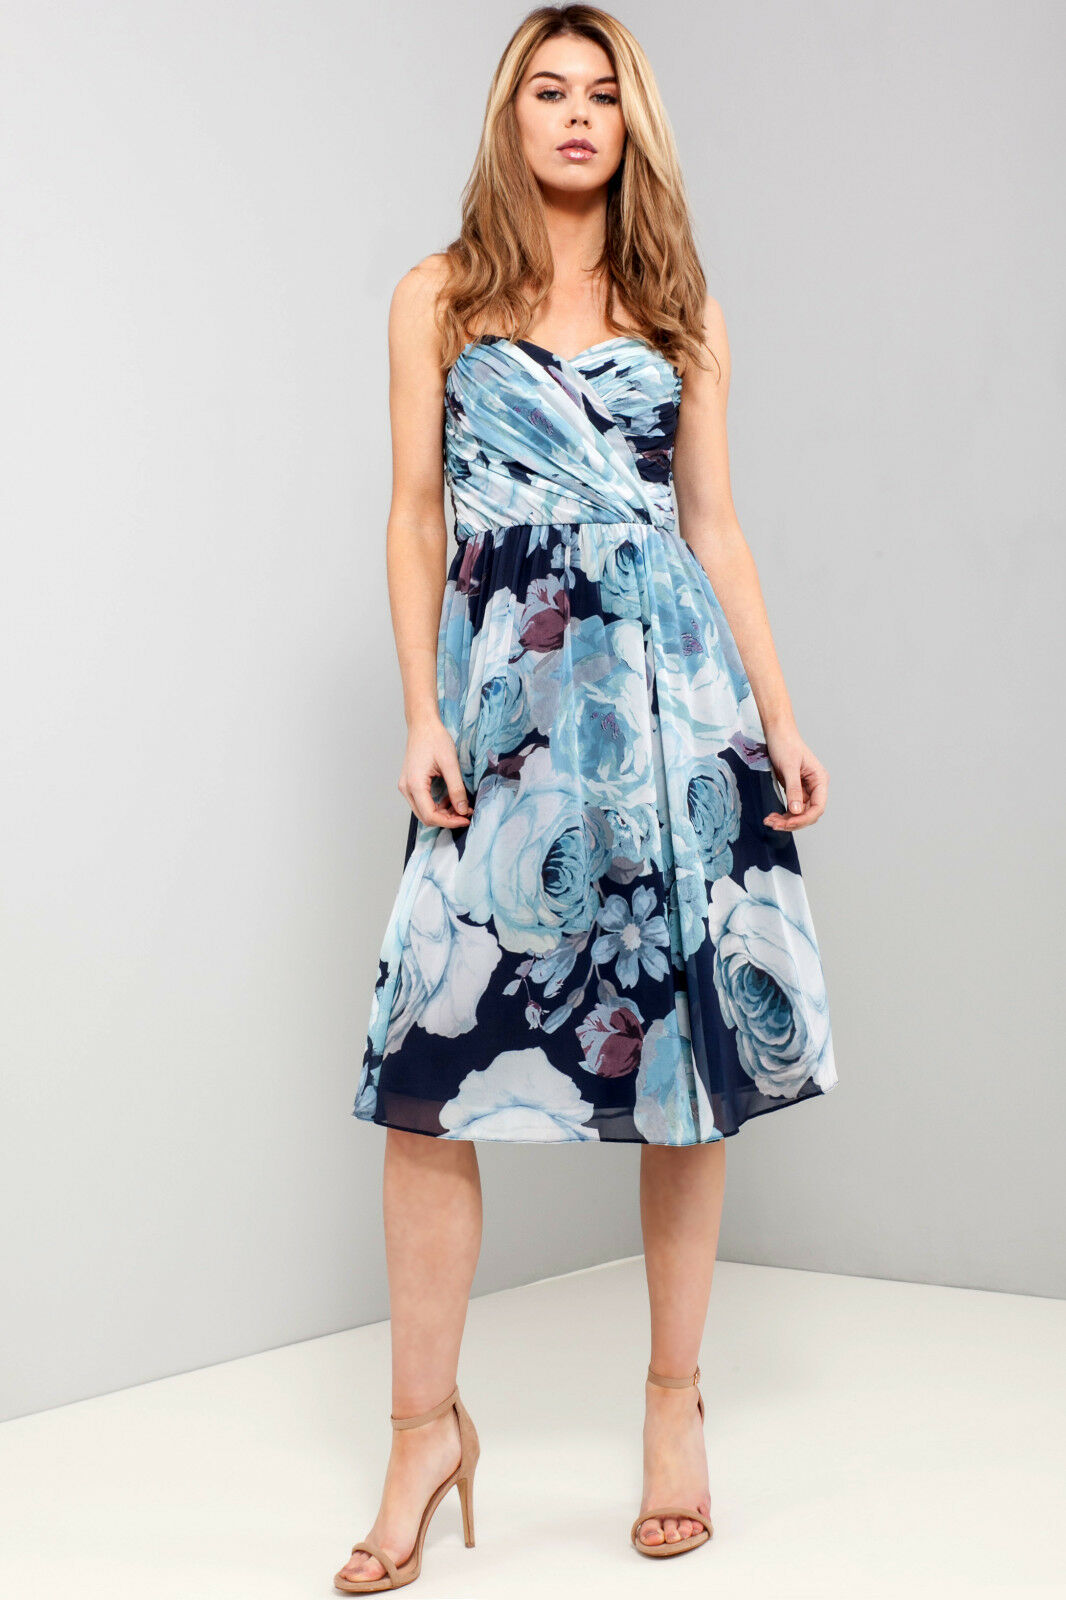 c475f6a42972 Details about ASOS Floral Bandeau Midi Dress in Blue Sizes 4 to 18